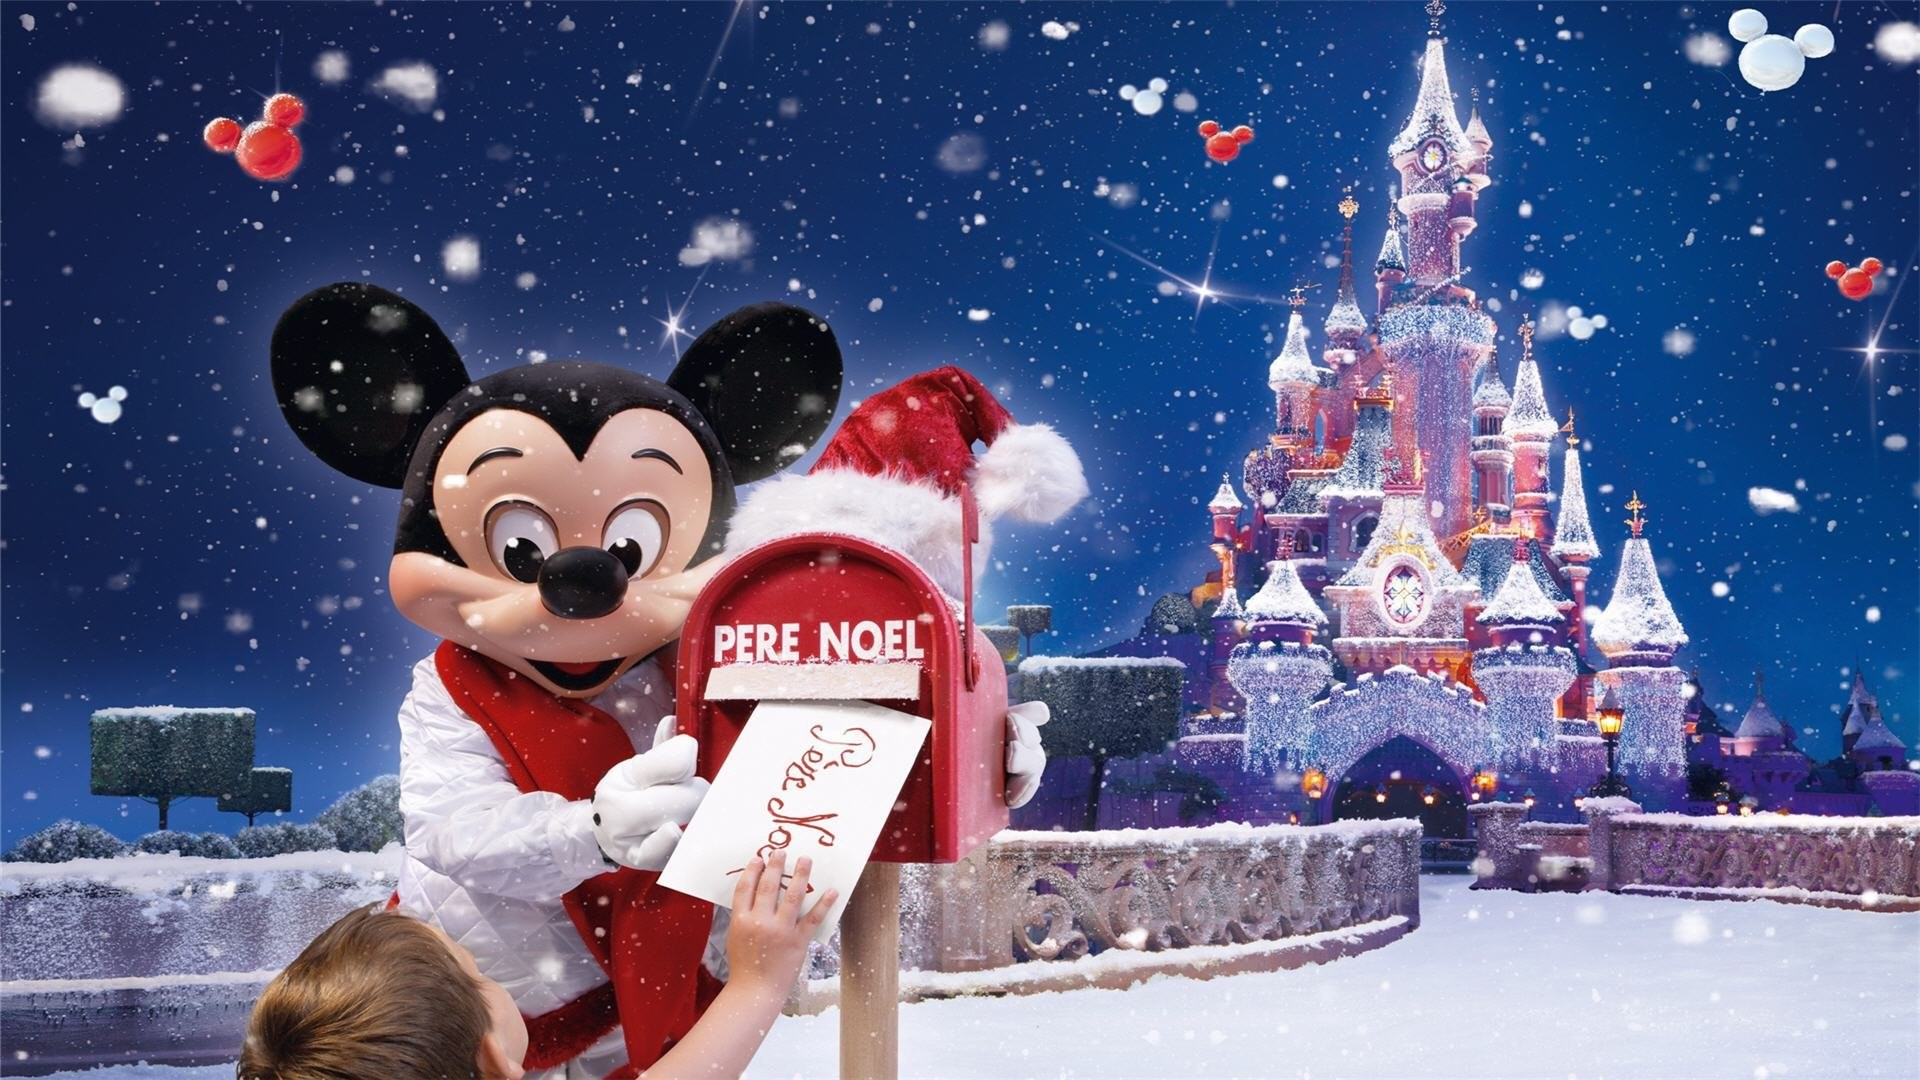 1920x1080 wallpaper-desktop-christmas-disney-backgrounds-photo.jpg